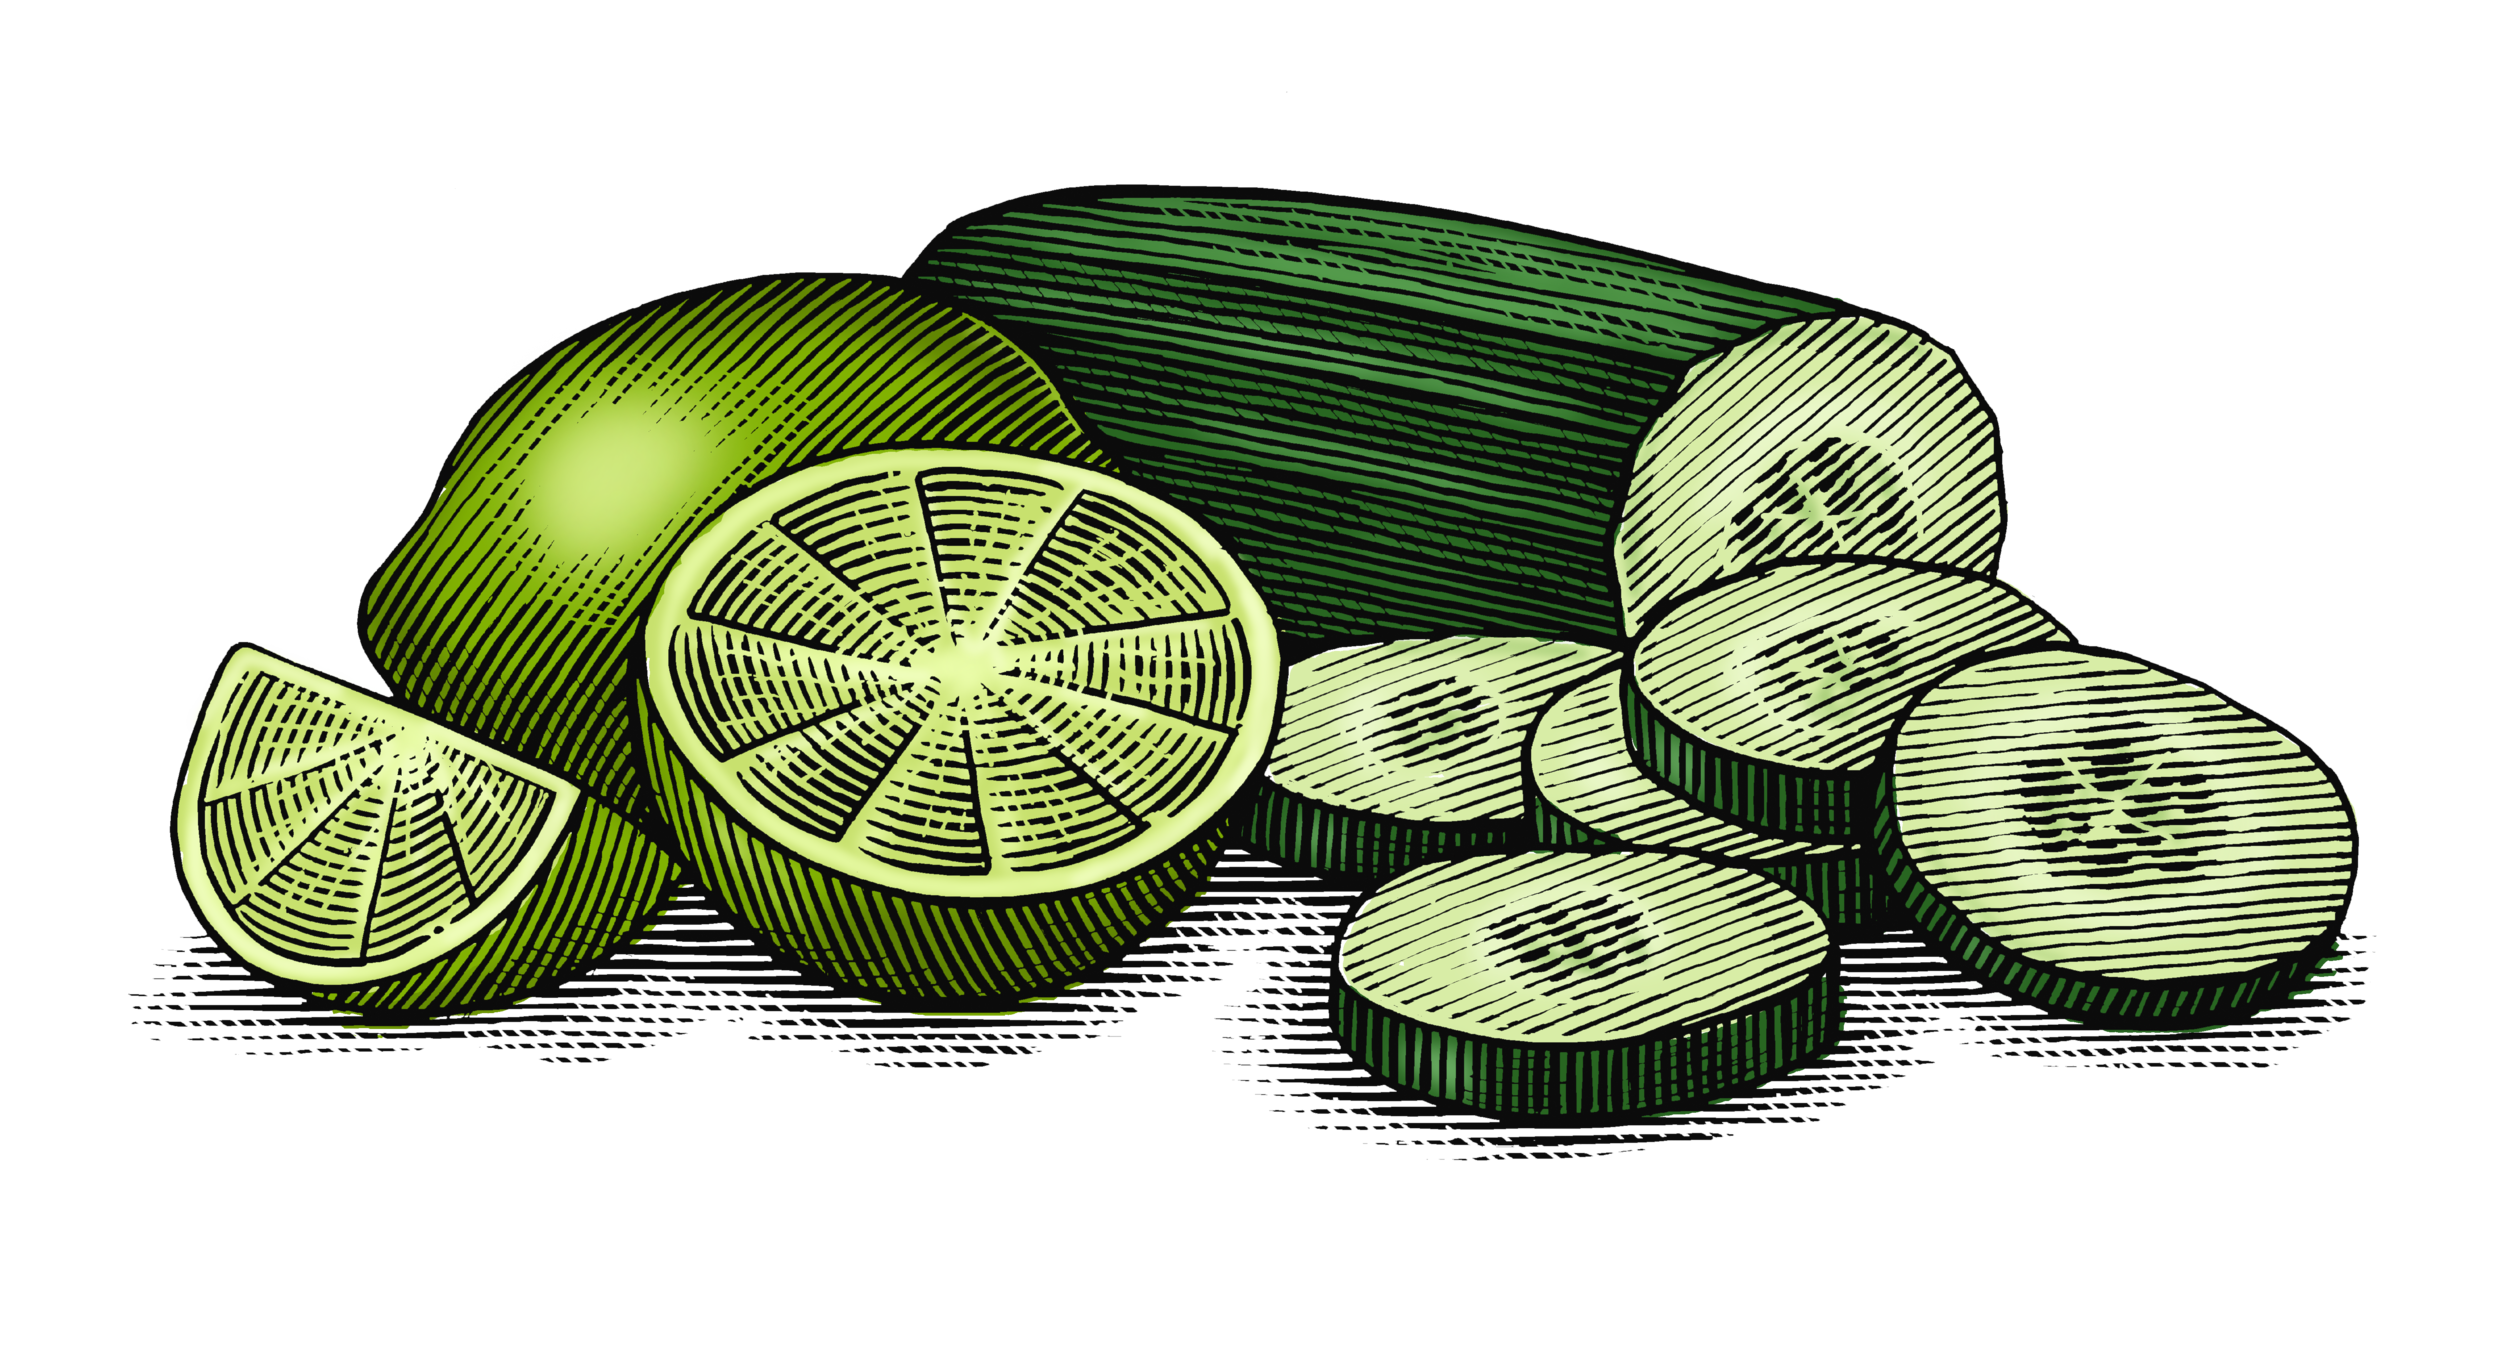 Cucumber_Lime_final_art_layer.png